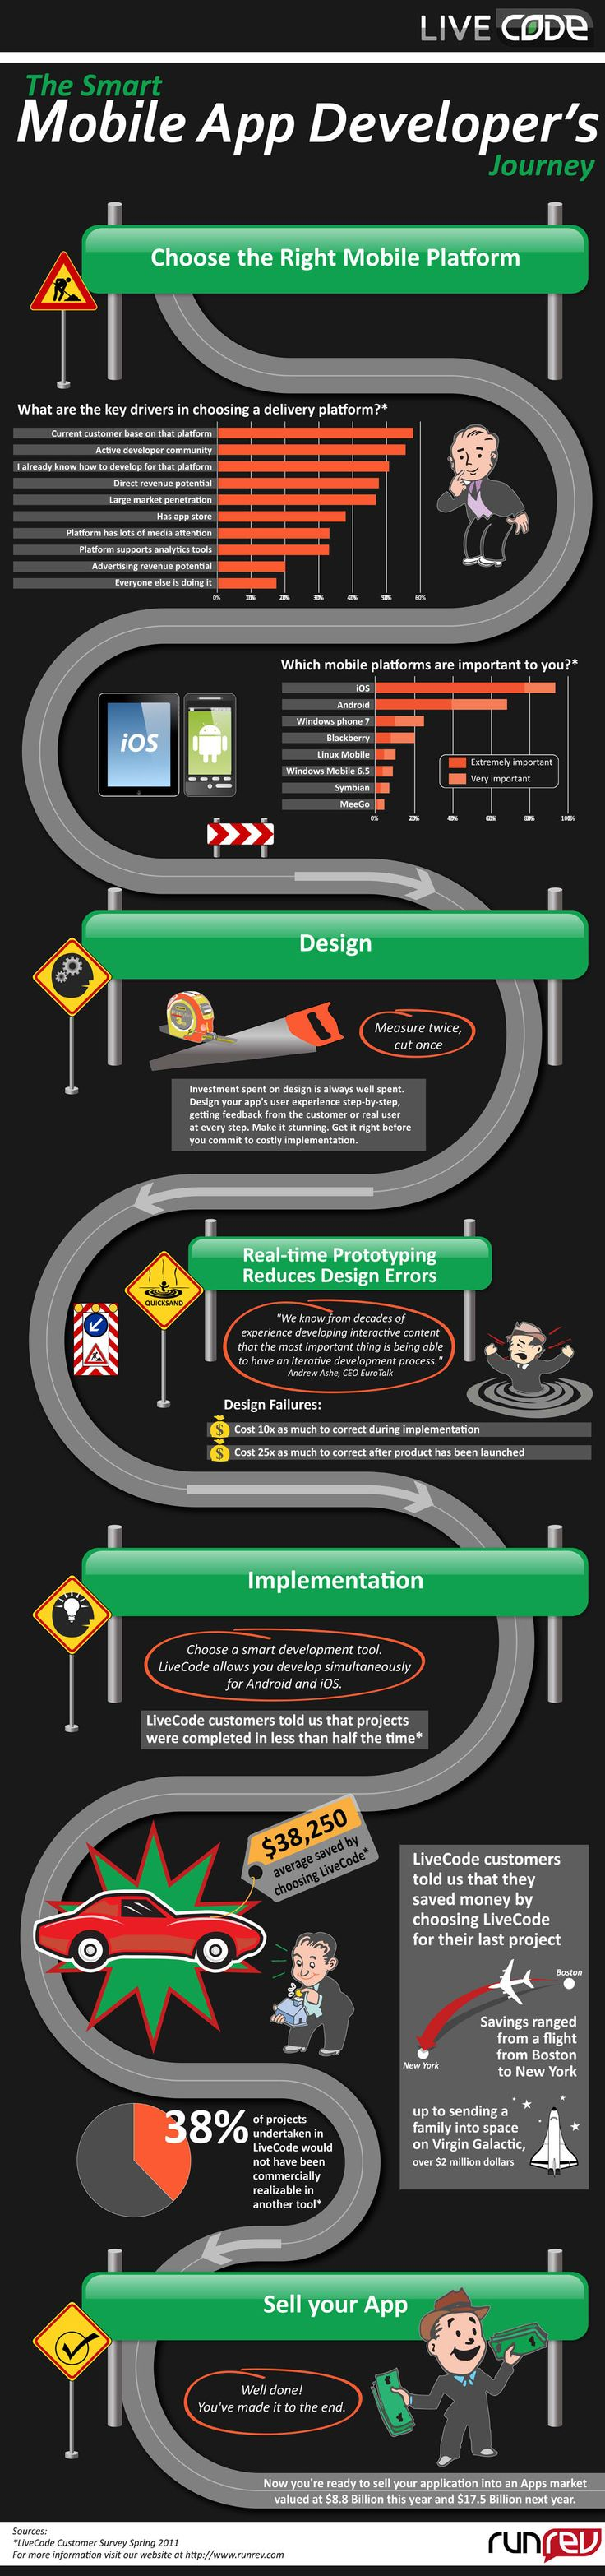 The Smart Mobile App Developers Journey